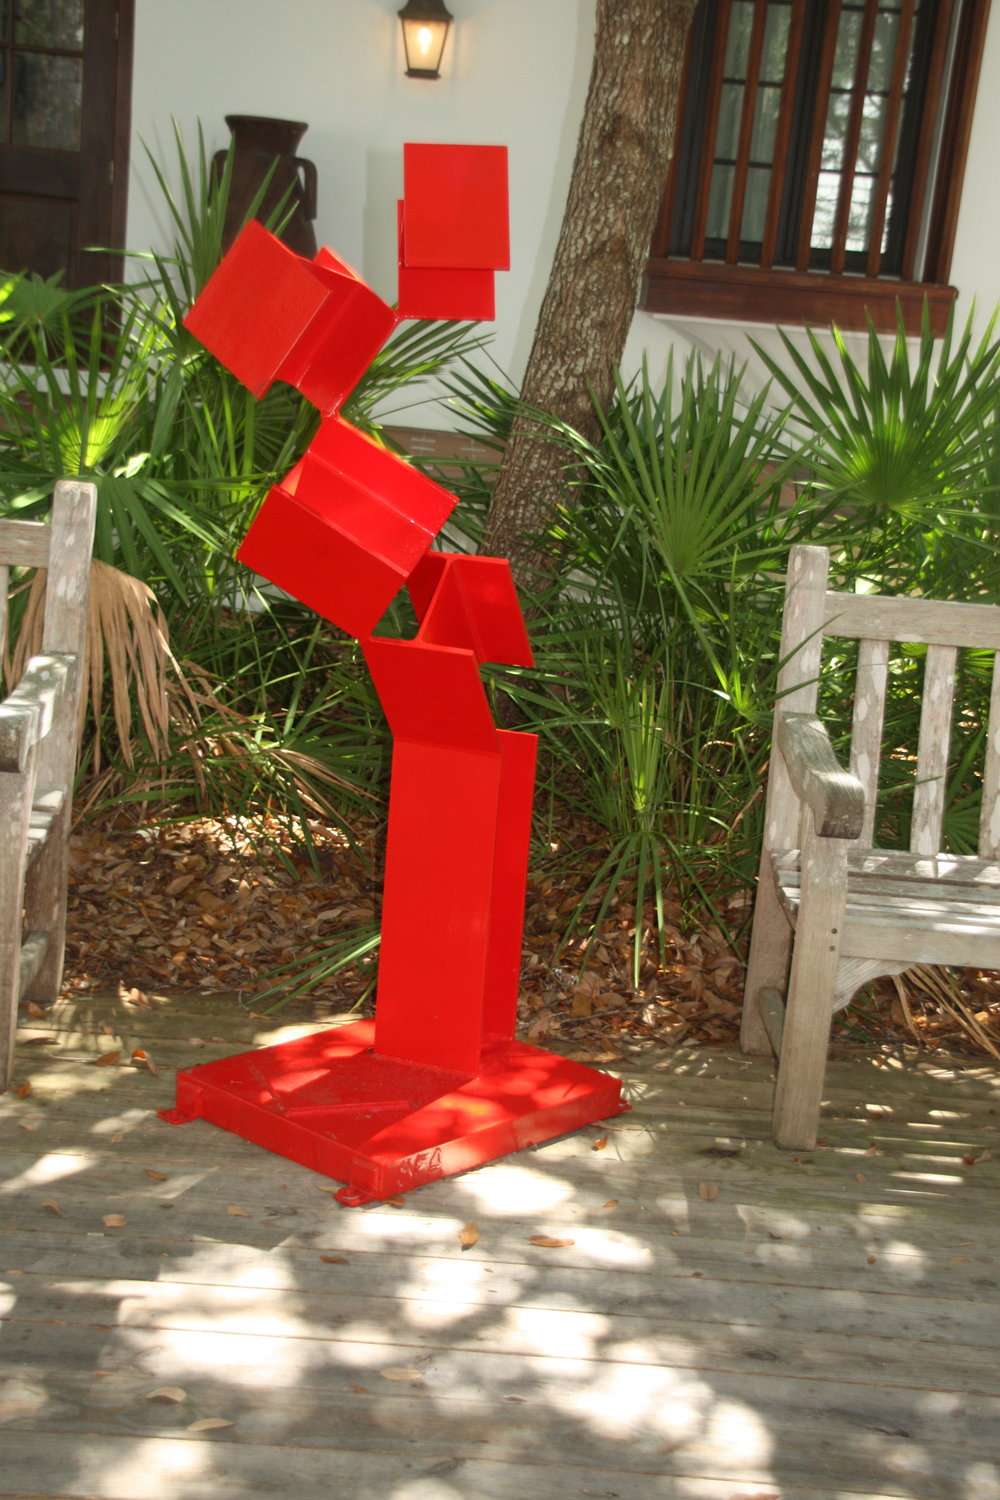 "Site 4 - Sydney Atkinson, b. 1946Monticello, FLSunbeam II, 2003Welded steel, painted66""x26""x24"" $5,500                                                                    ""Rigid beam represents strength, breaking and dancing upward, lyrical and vulnerable as it ascends."